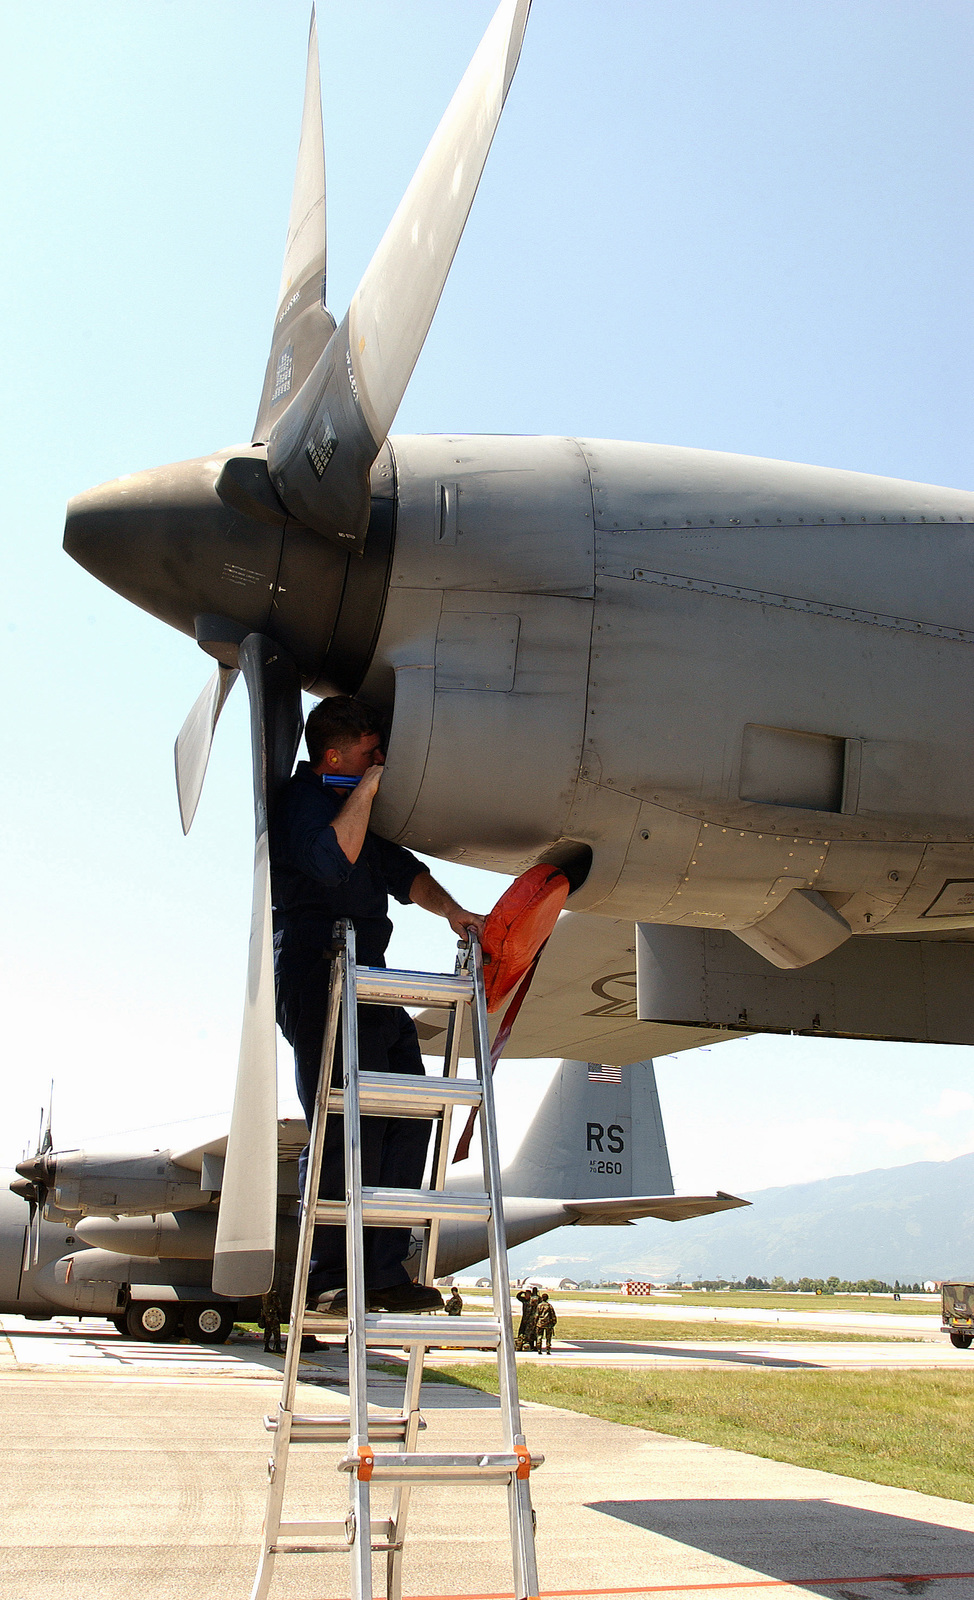 US Air Force (USAF) Technical Sergeant (TSGT) George Nunn, 37th Airlift Wing (AW) uses a ladder to perform an intake and exhaust inspection on a USAF C-130 Hercules aircraft on the flight line at Aviano Air Base (AB), Italy